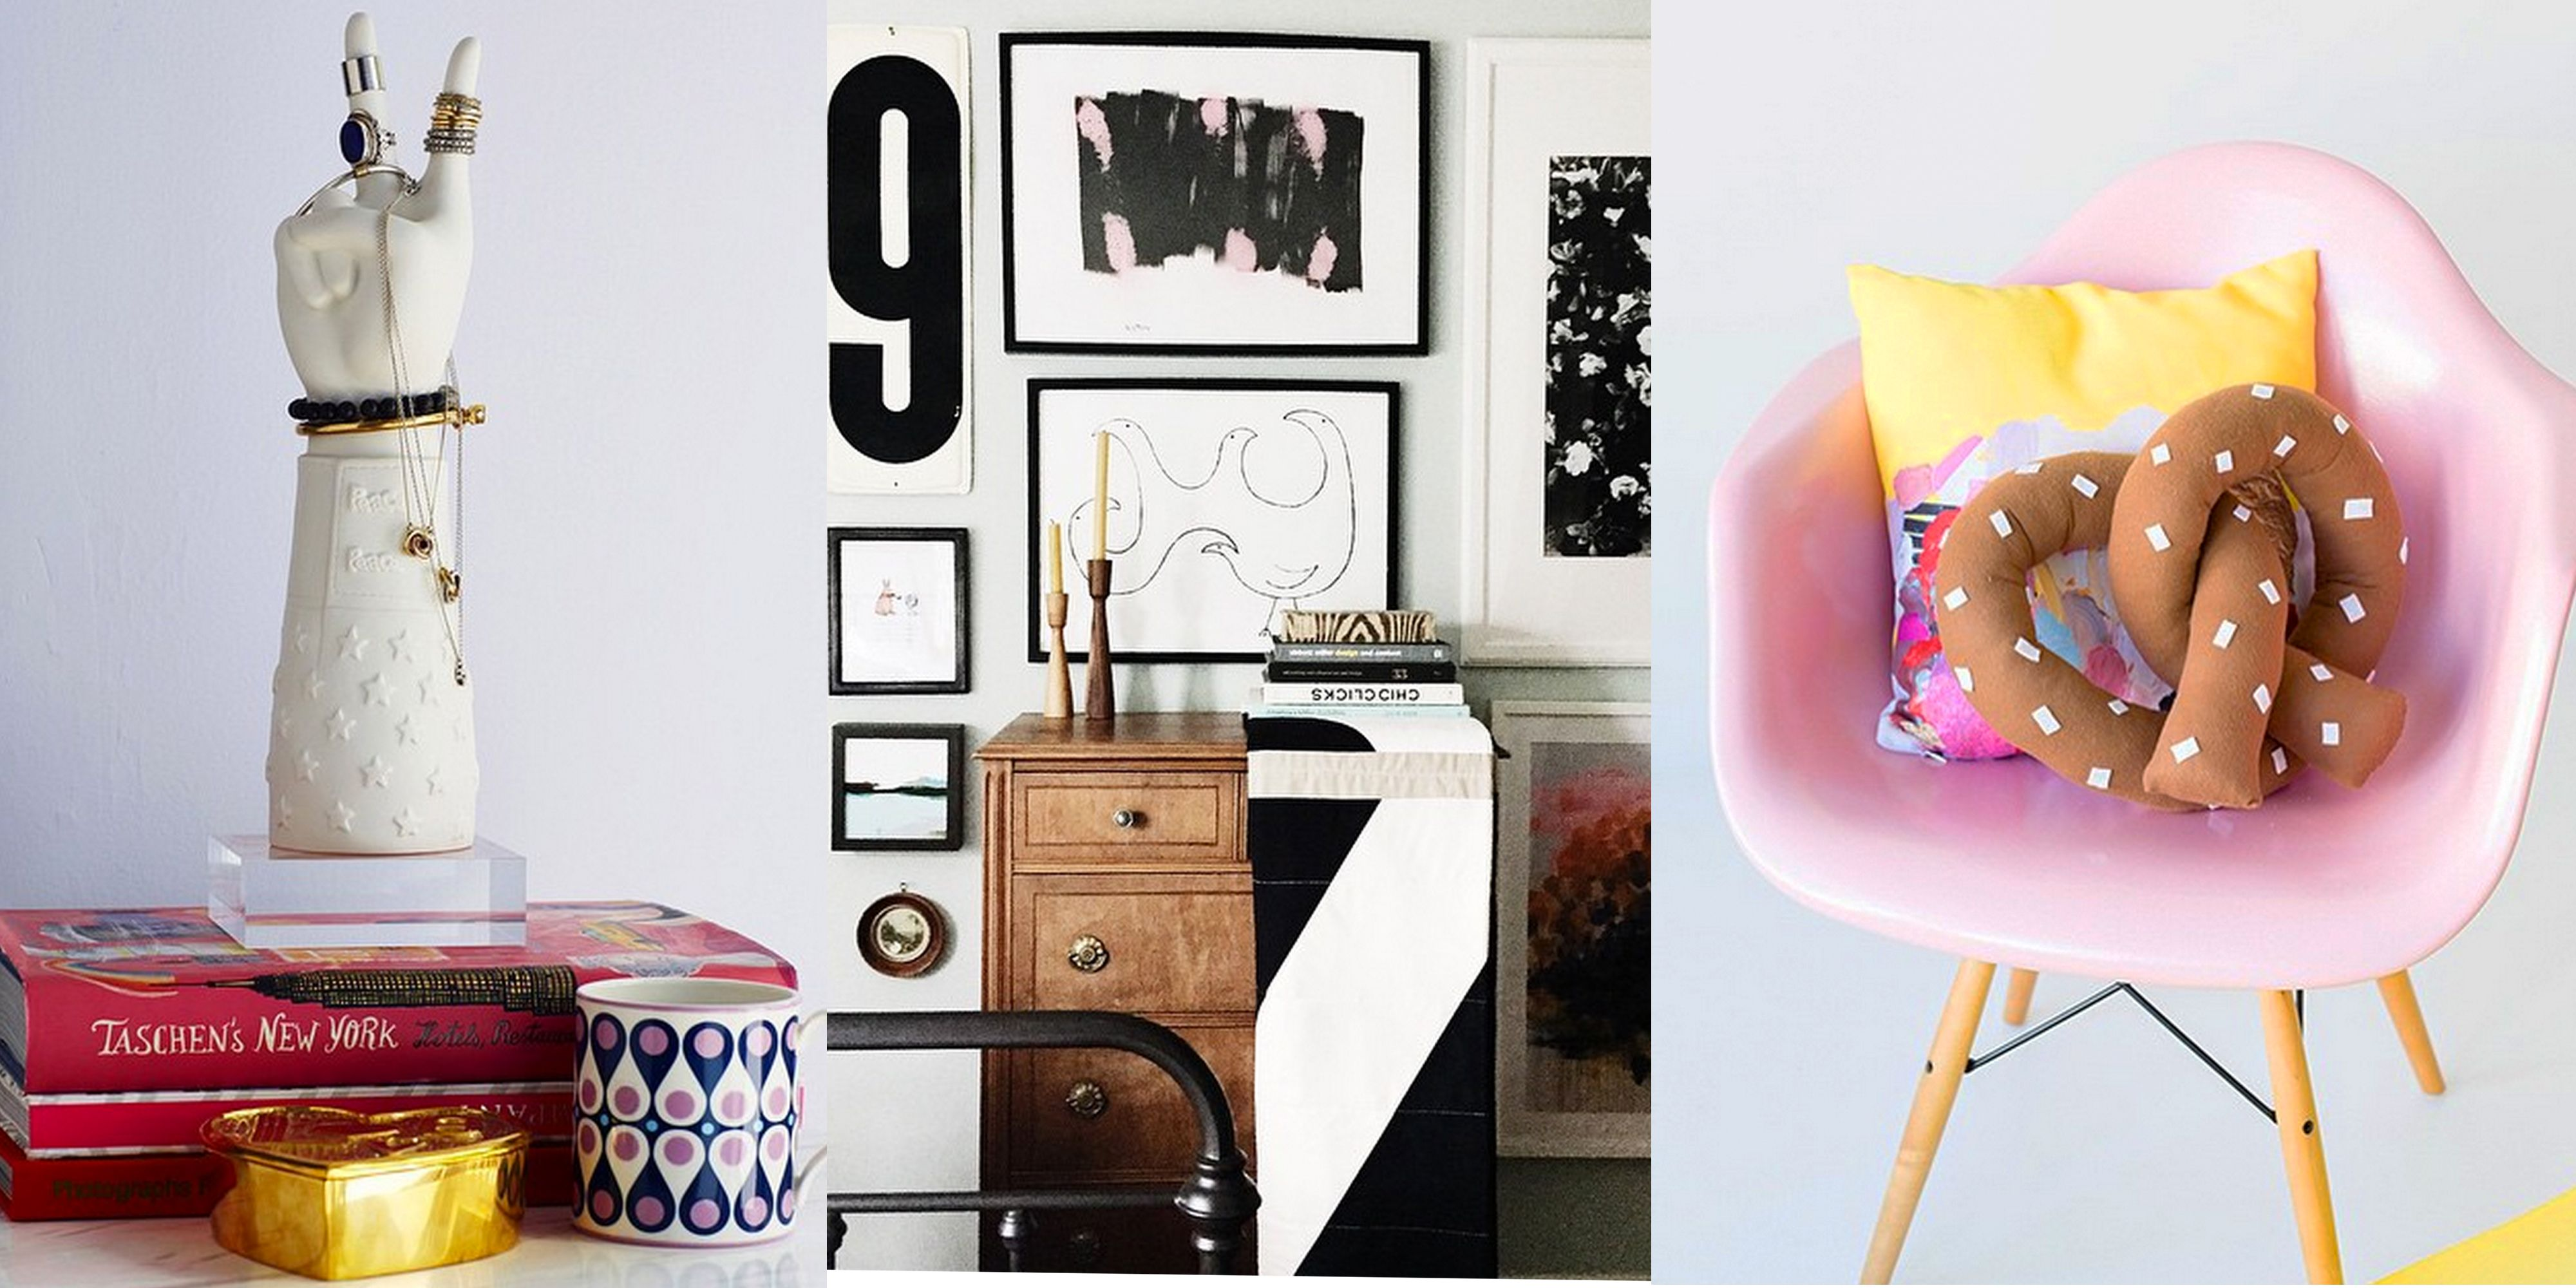 A Guide To Tastefully Decorating Your Apartment On Budget